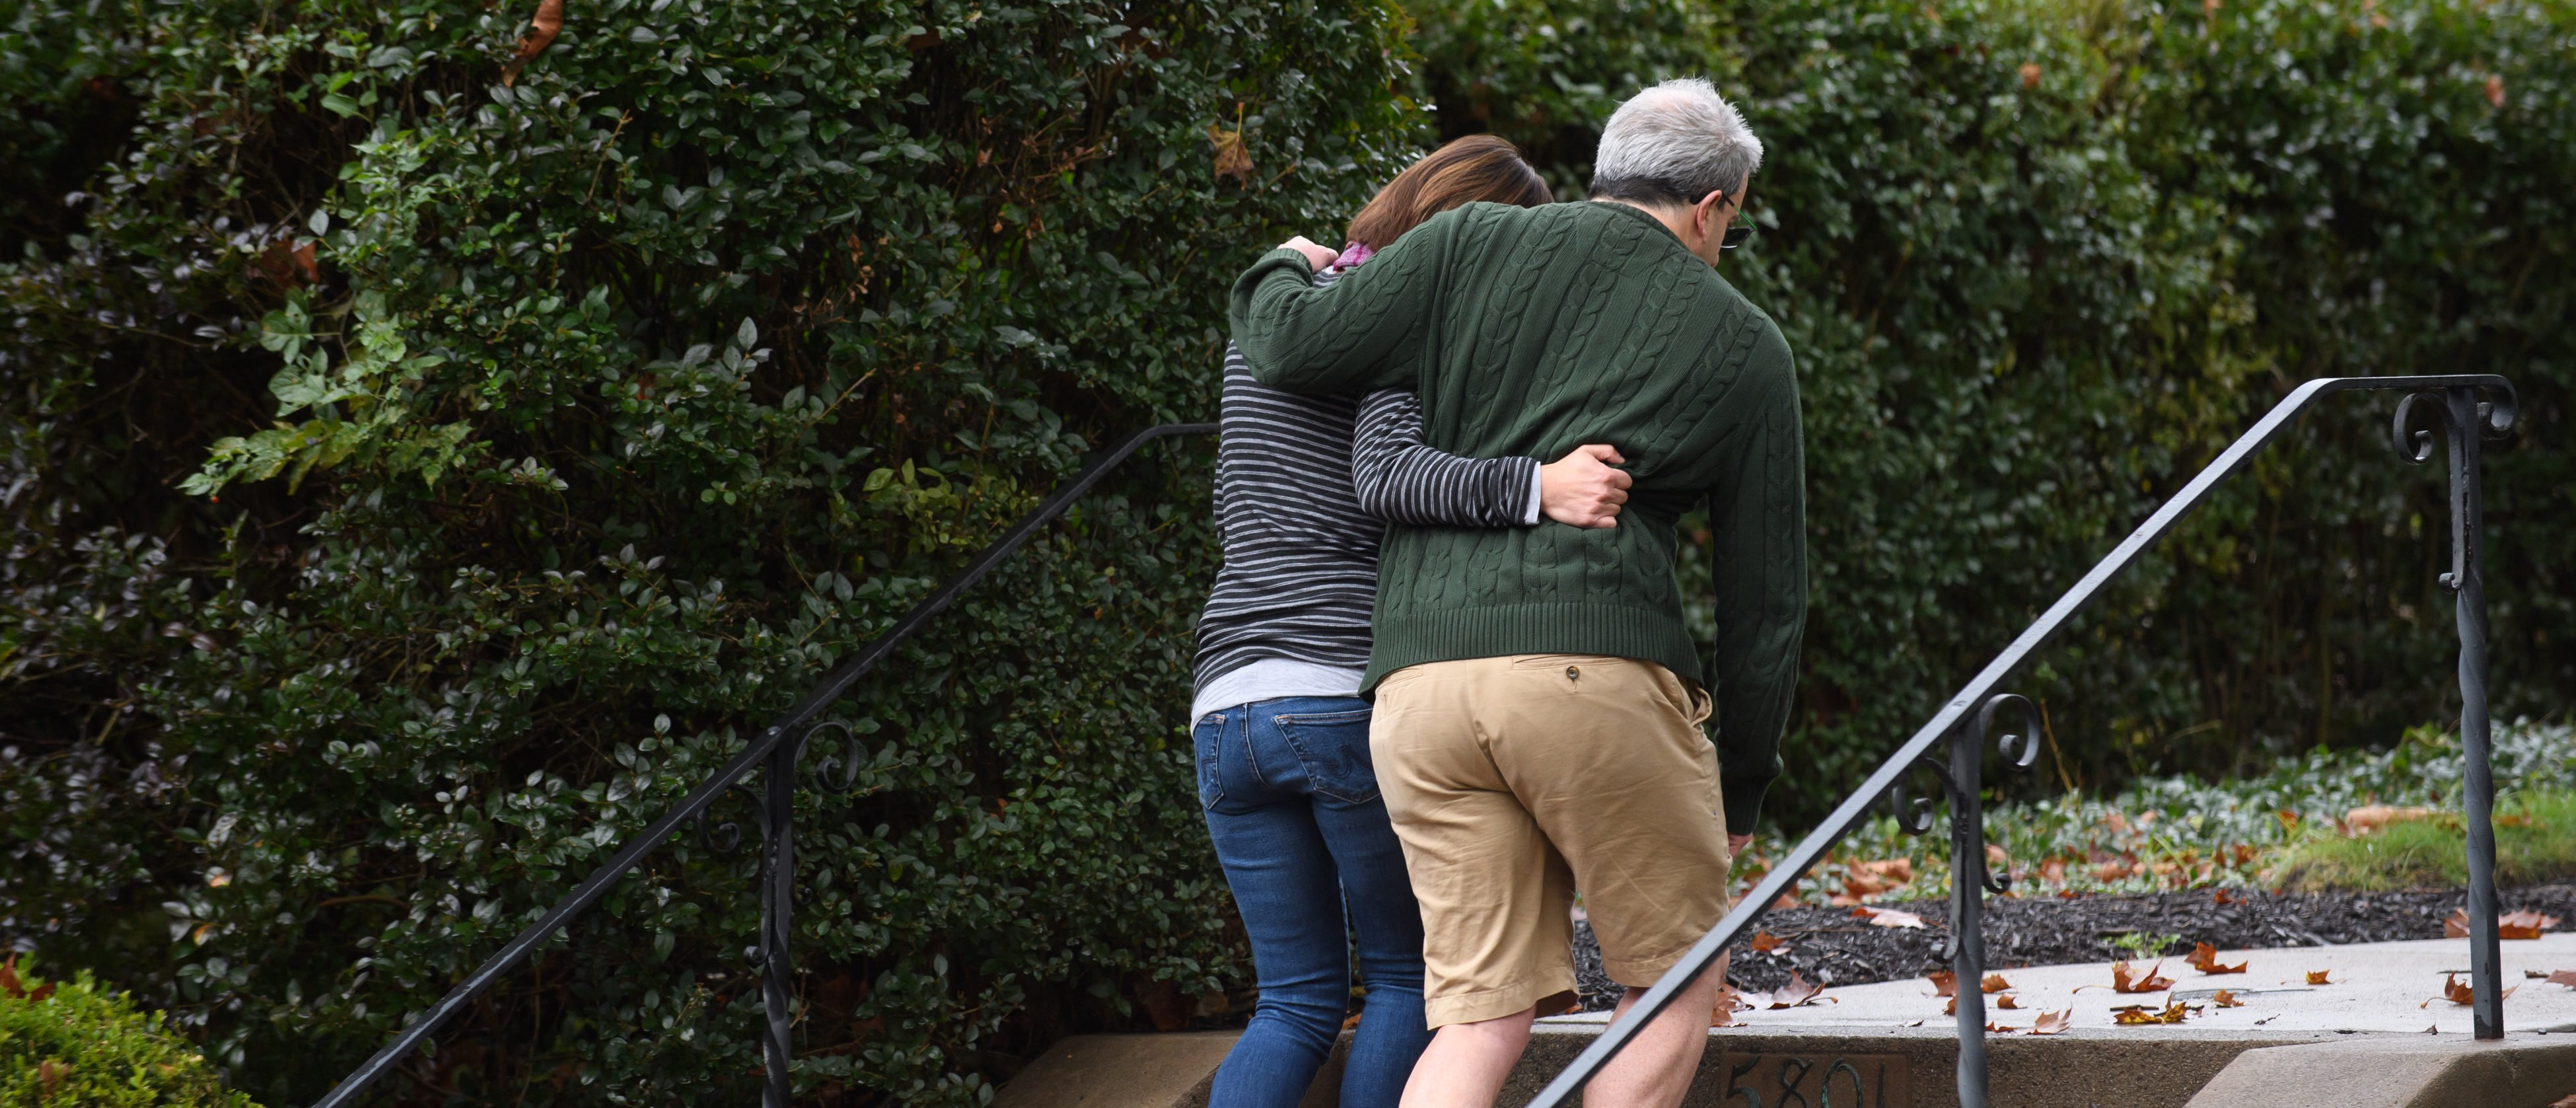 PITTSBURGH, PA - OCTOBER 27: Neighbors around the corner from the site of a mass shooting at the Tree of Life Synagogue embrace one another in the Squirrel Hill neighborhood on October 27, 2018 in Pittsburgh, Pennsylvania. According to reports at least 12 people were shot, 4 dead and three police officers hurt during the incident. The shooter surrendered to authorities and was taken into custody. (Photo by Jeff Swensen/Getty Images)